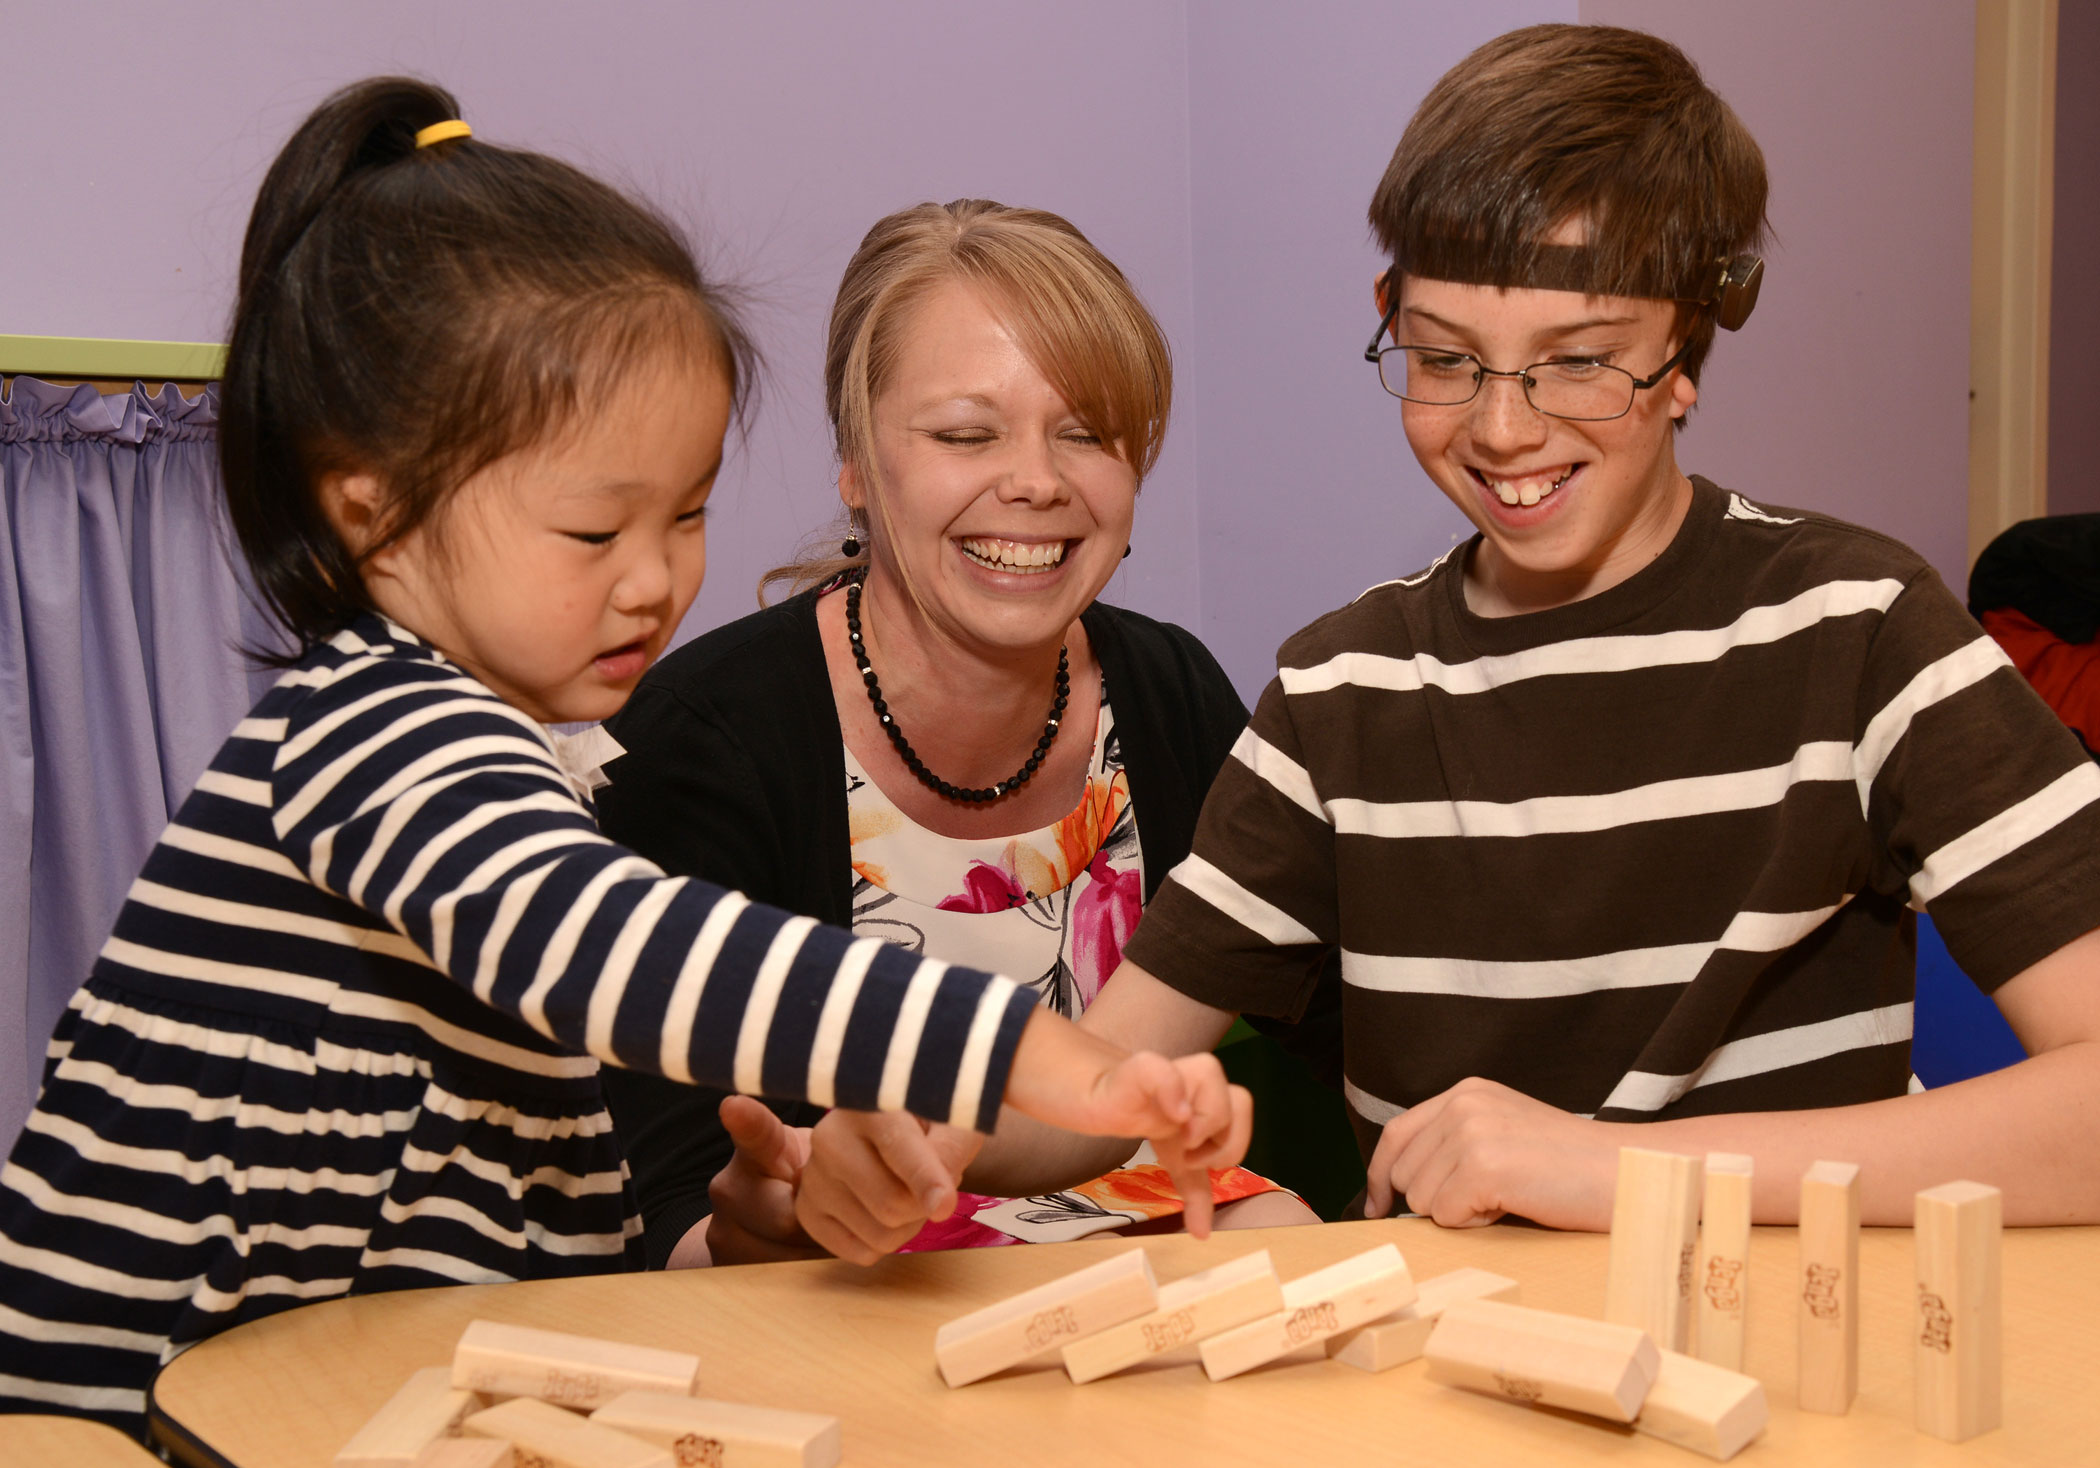 Audiologist Dr. Hedman sits in the middle of two patients playing Jenga. The girl on the left as her black hair in a ponytail and is wearing a black and white striped shirt. The boy on the right has glasses and is wearing a brown shirt with white stripes.